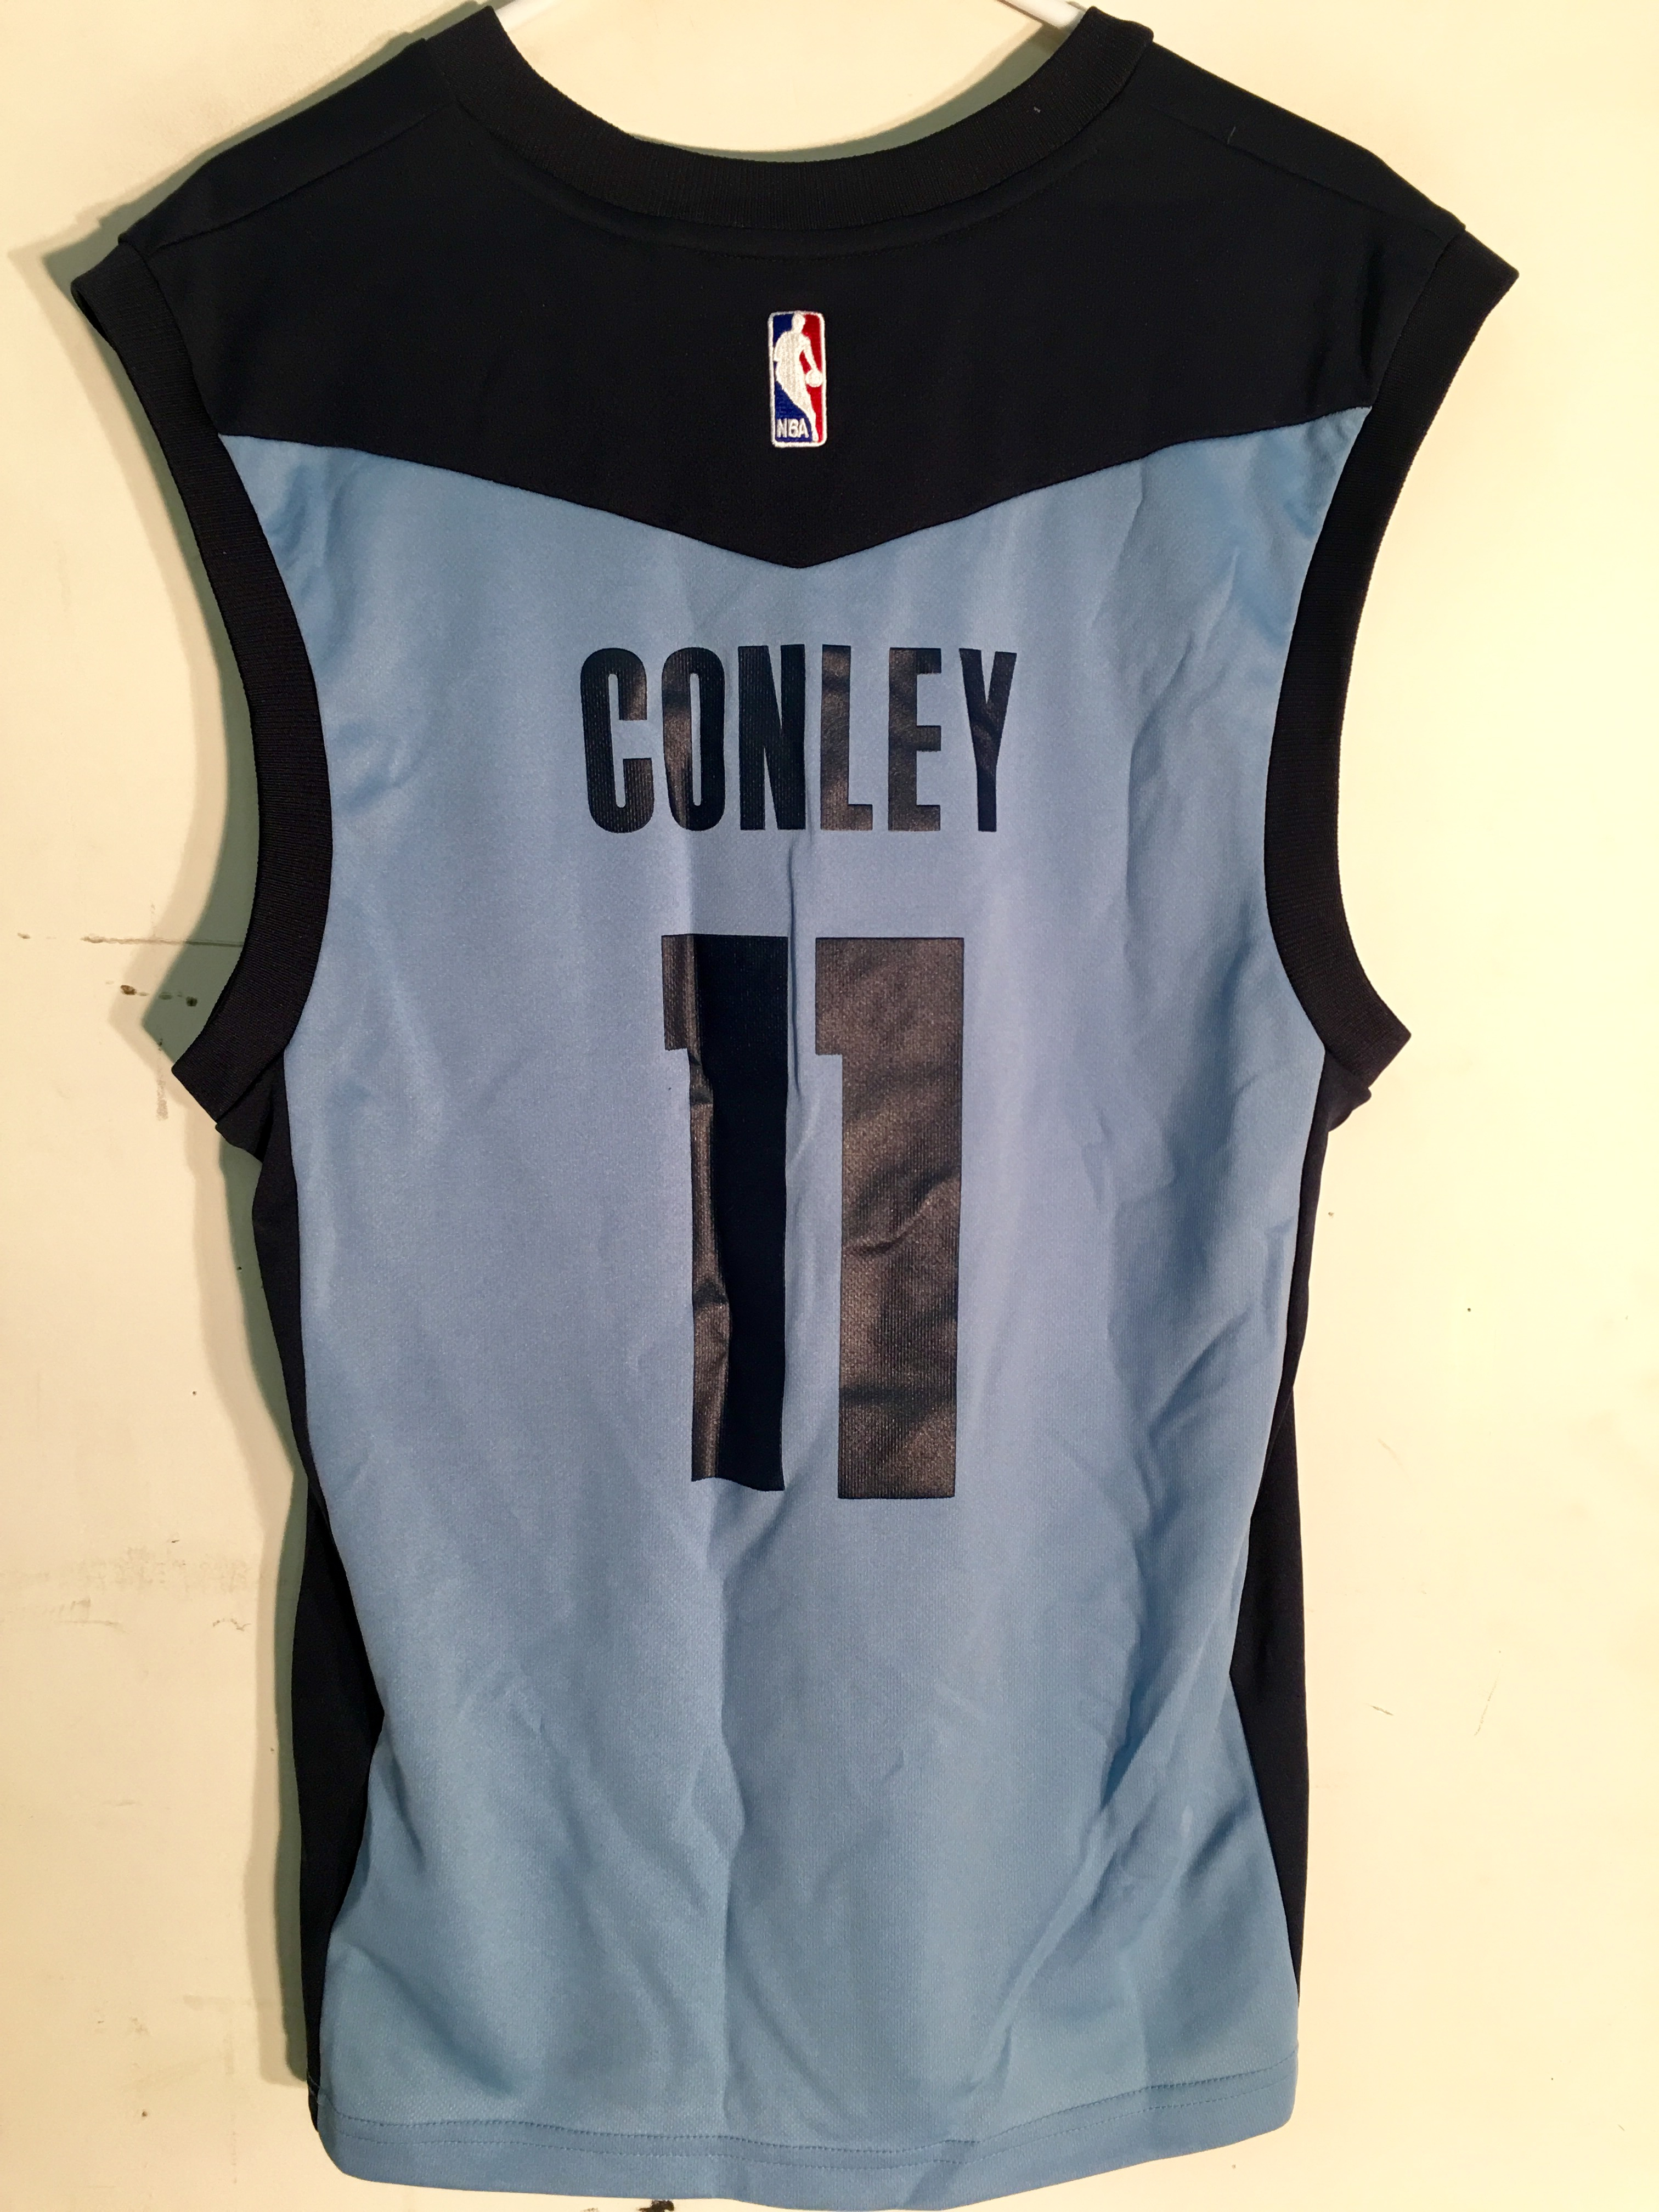 dfd33ba8cdc ... australia adidas nba jersey grizzlies mike conley light blue sz xl  d85f3 18cb0